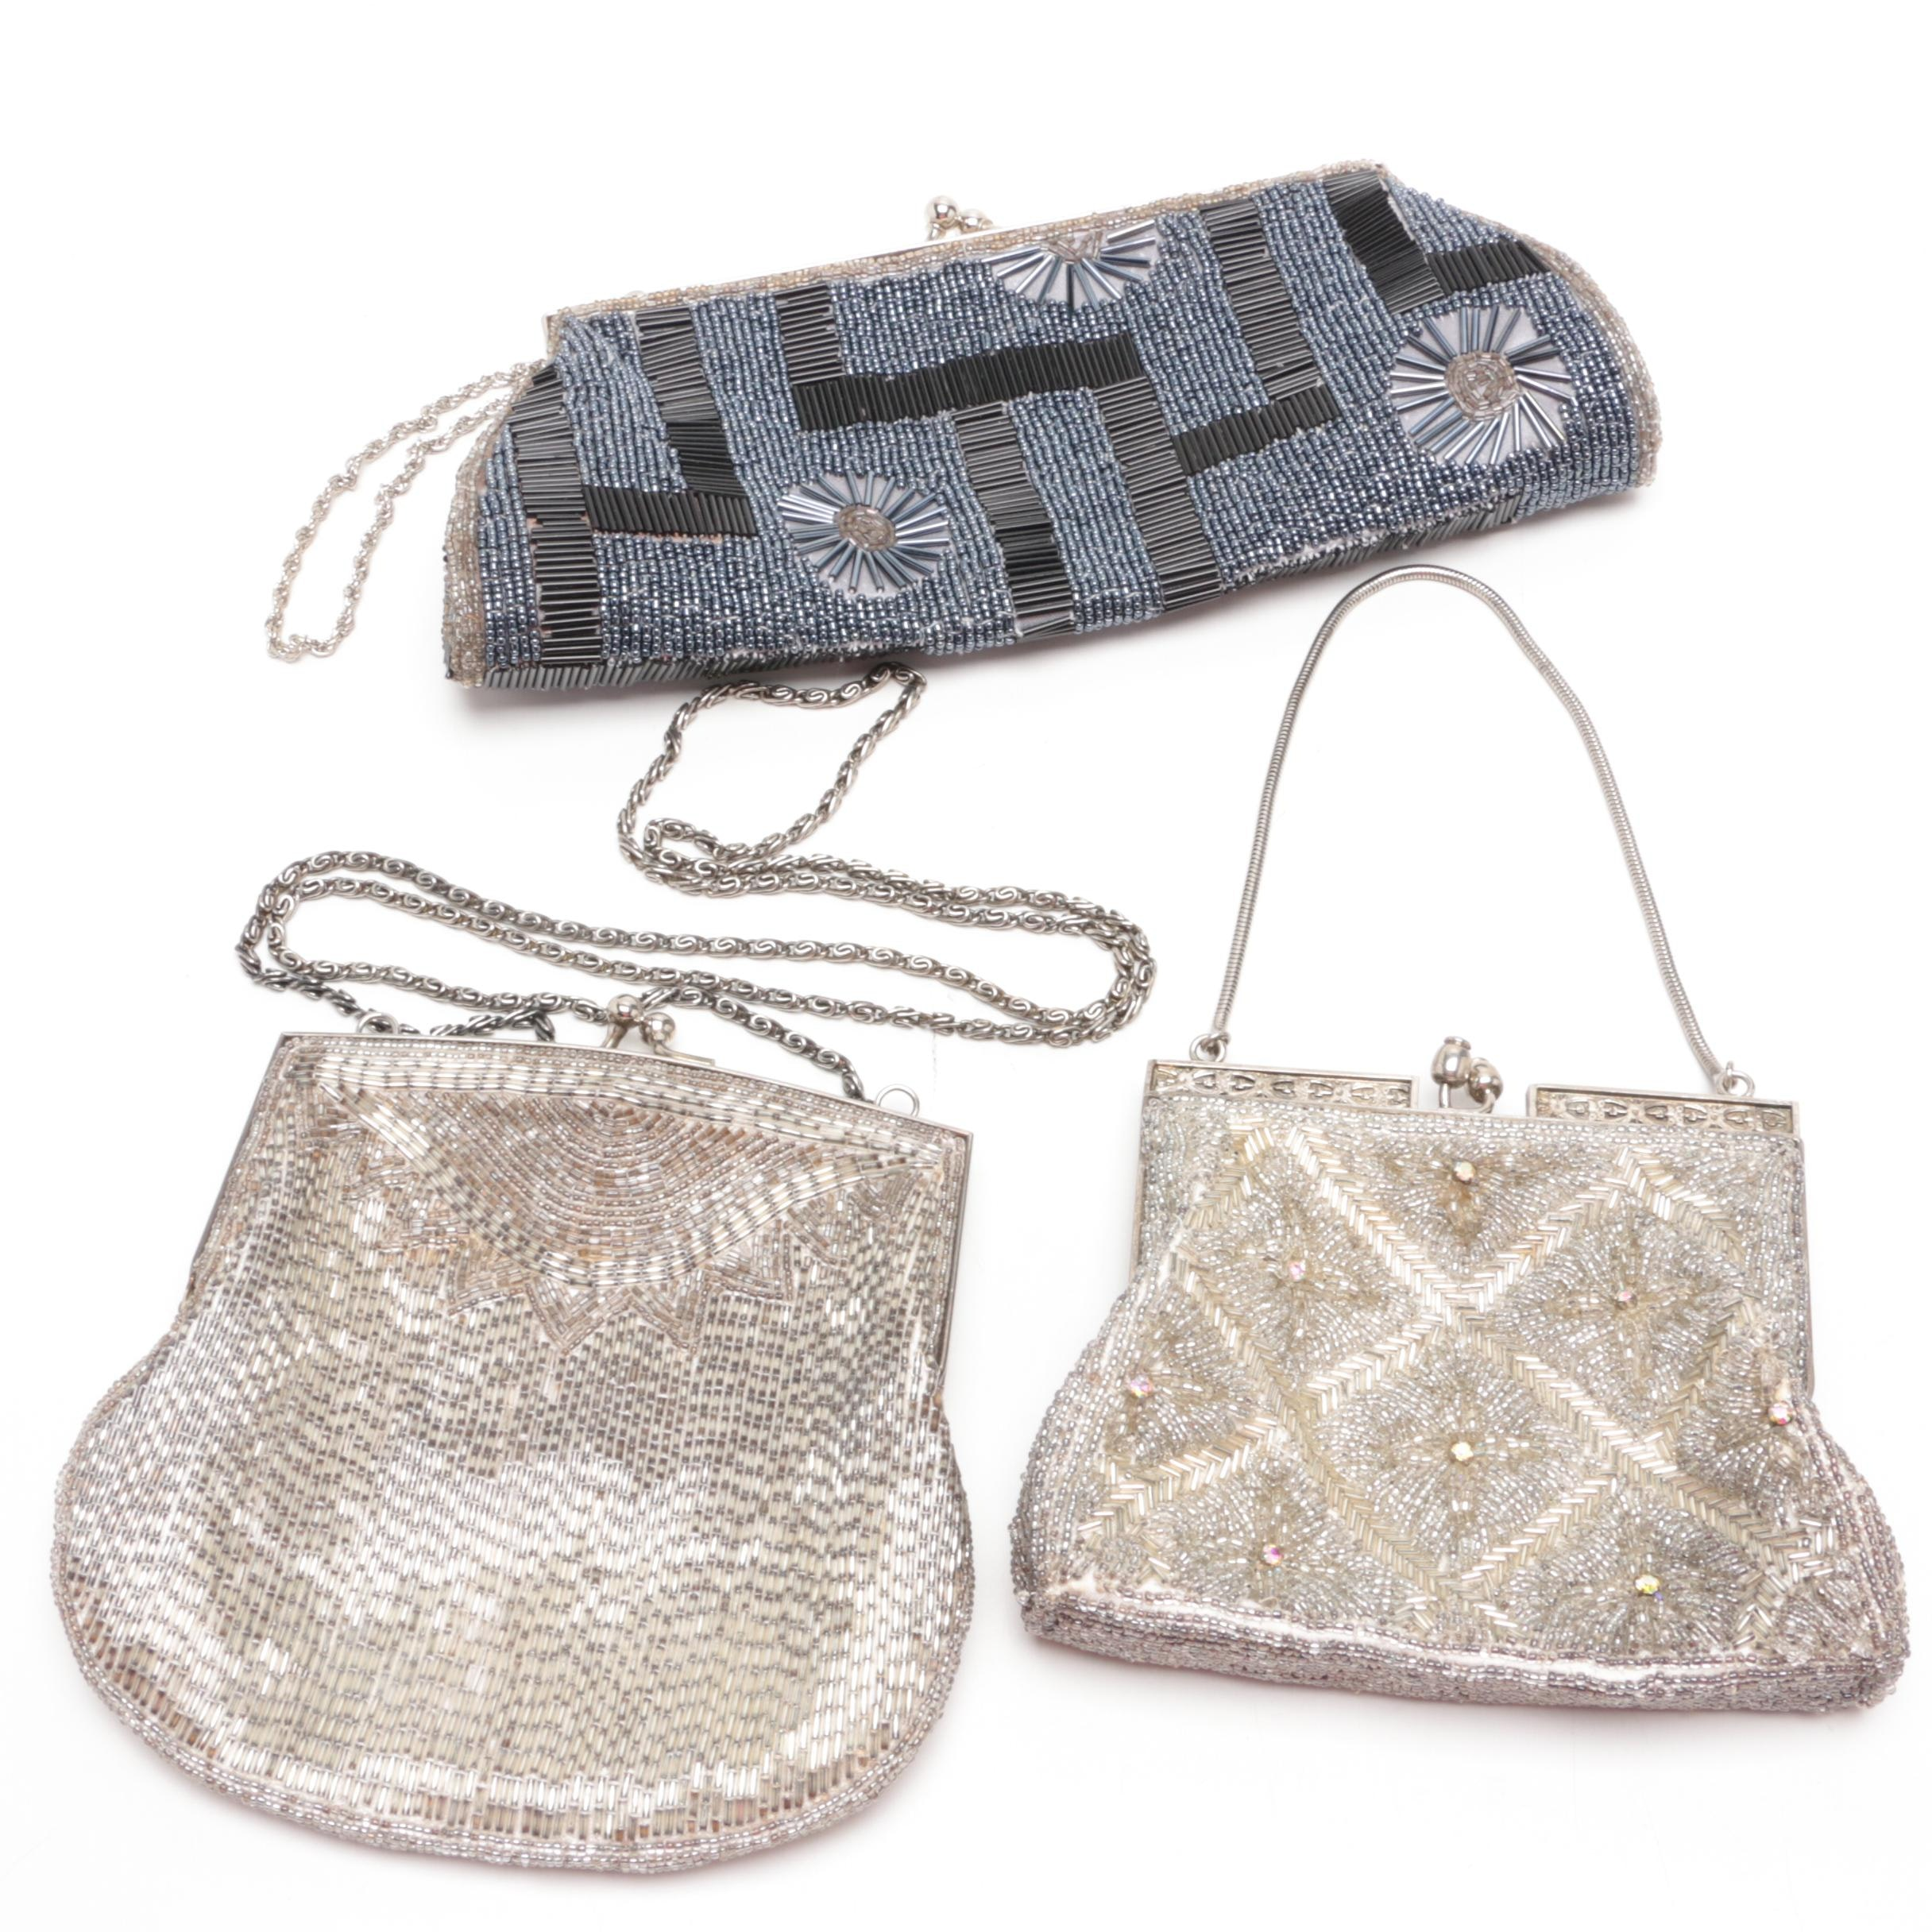 Delill Beaded Evening Bag and Other Beading Evening Bags, Vintage